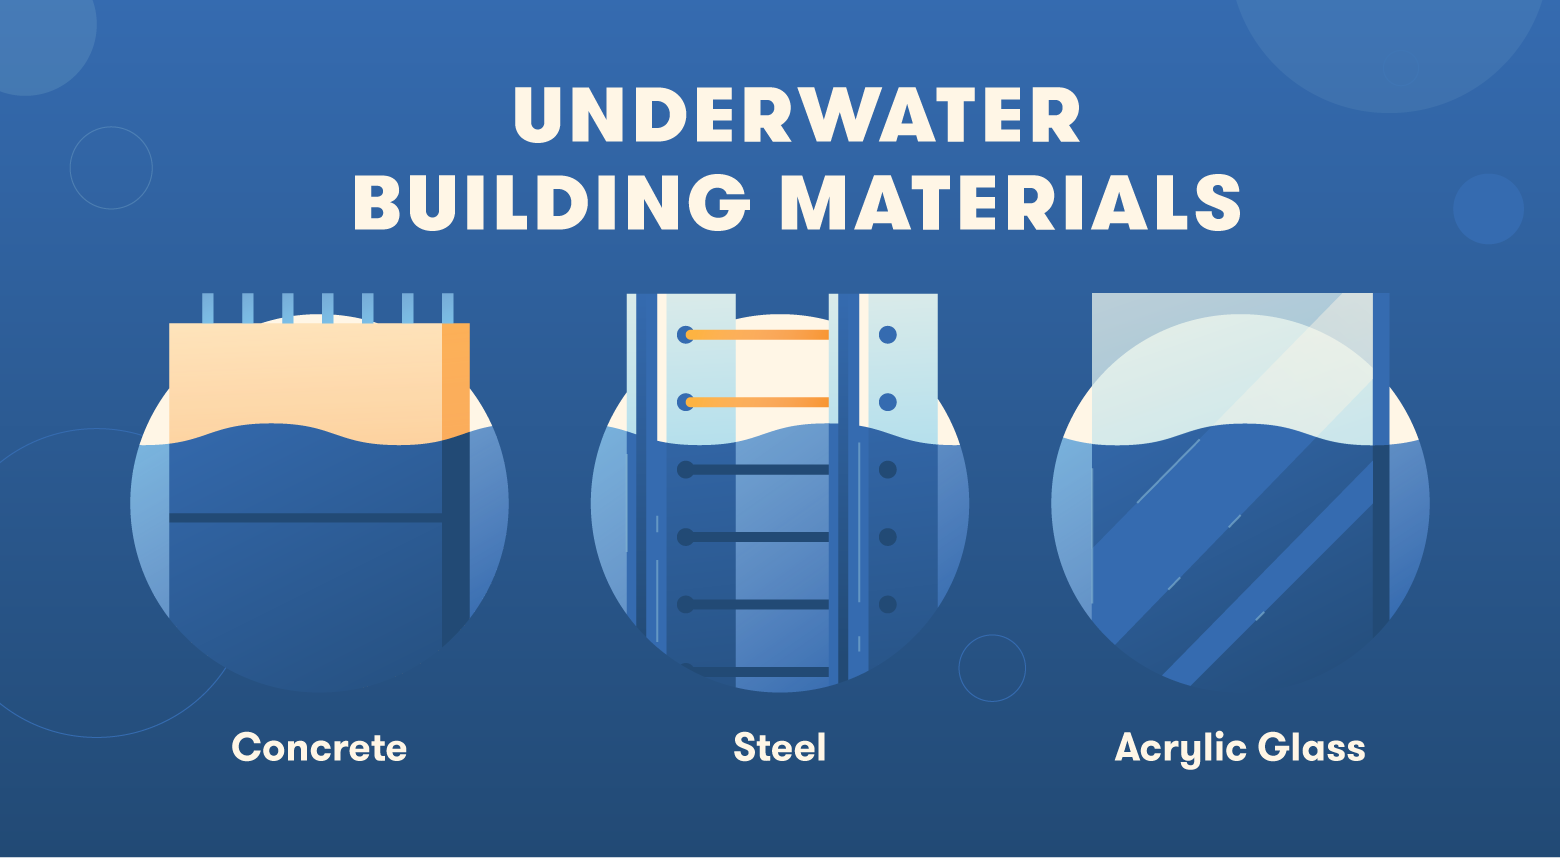 Common underwater building materials include concrete, steel, and acrylic glass.